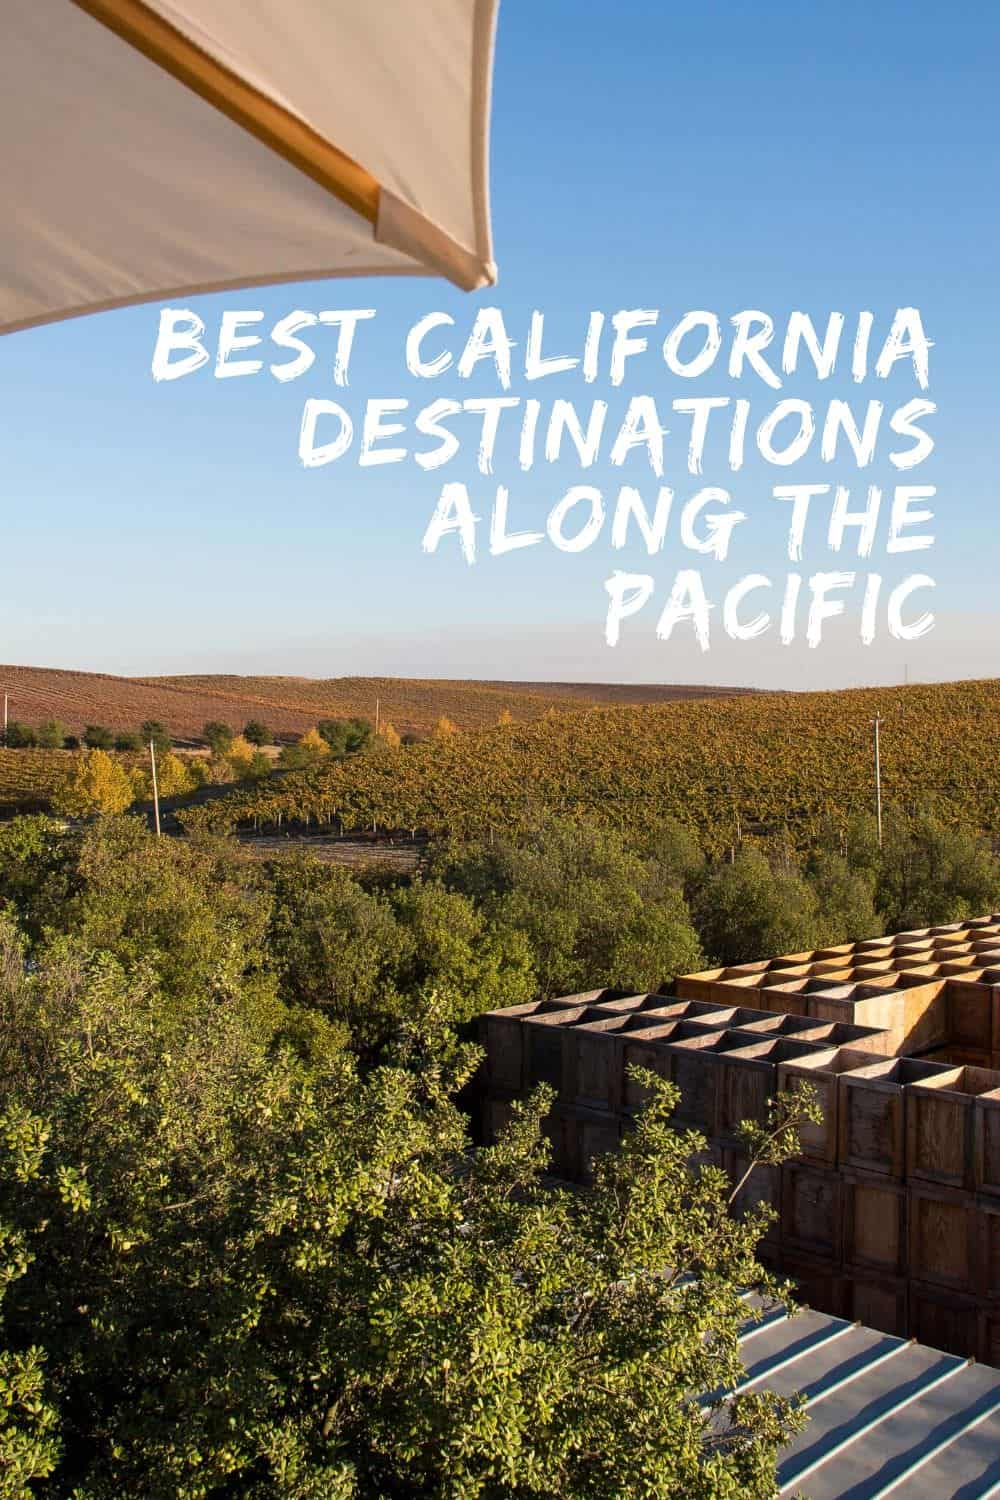 The Best California Destinations Along the Pacific Ocean